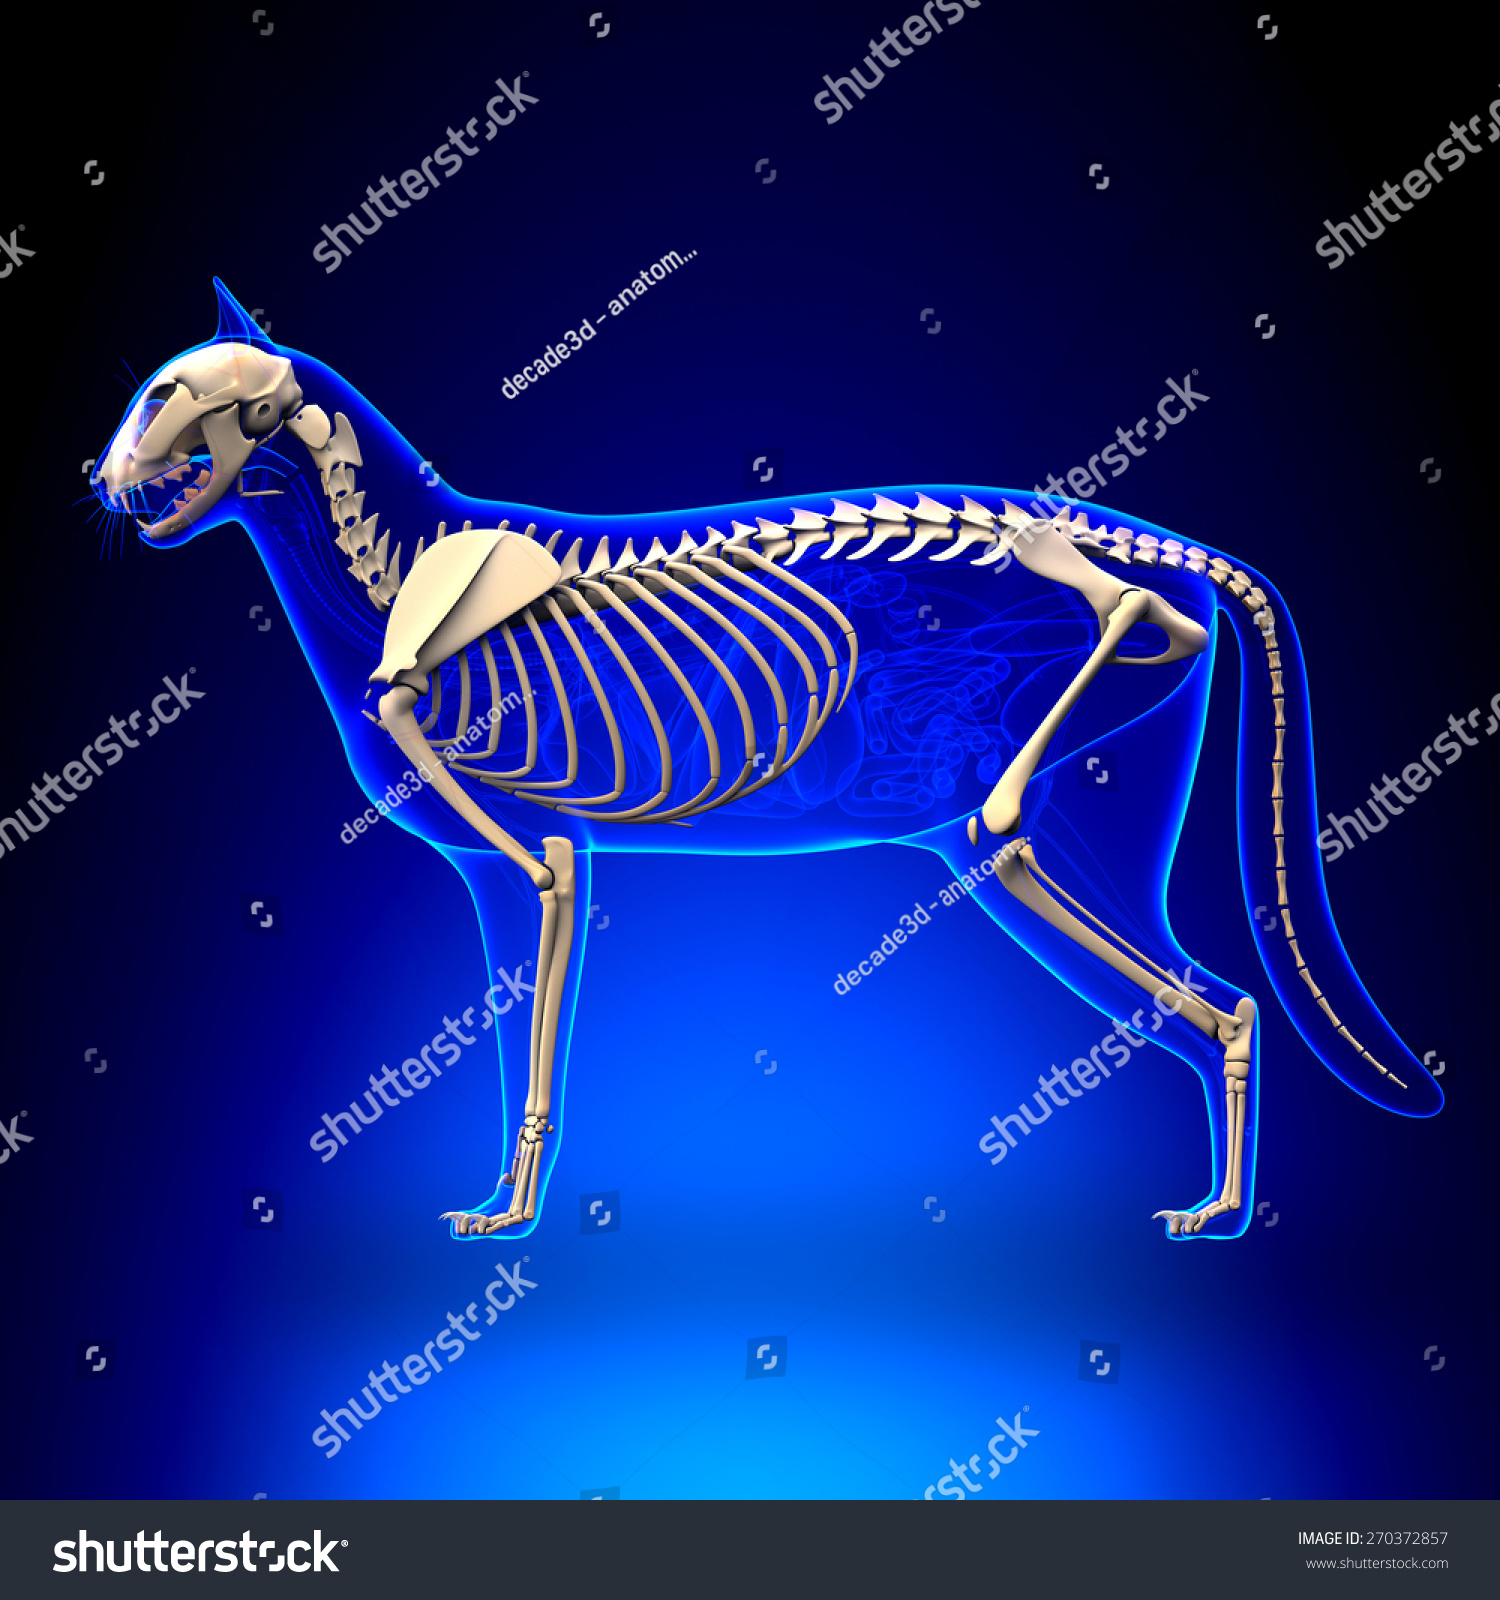 Cat Skeleton Anatomy Stock Illustration 270372857 - Shutterstock